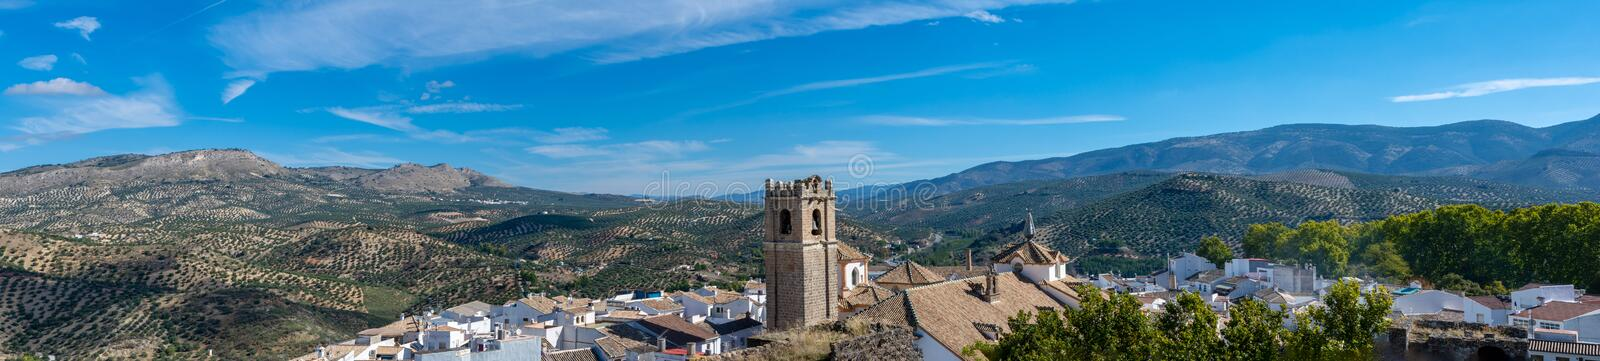 Panorama of the city of Priego de Cordoba in Spain royalty free stock photos